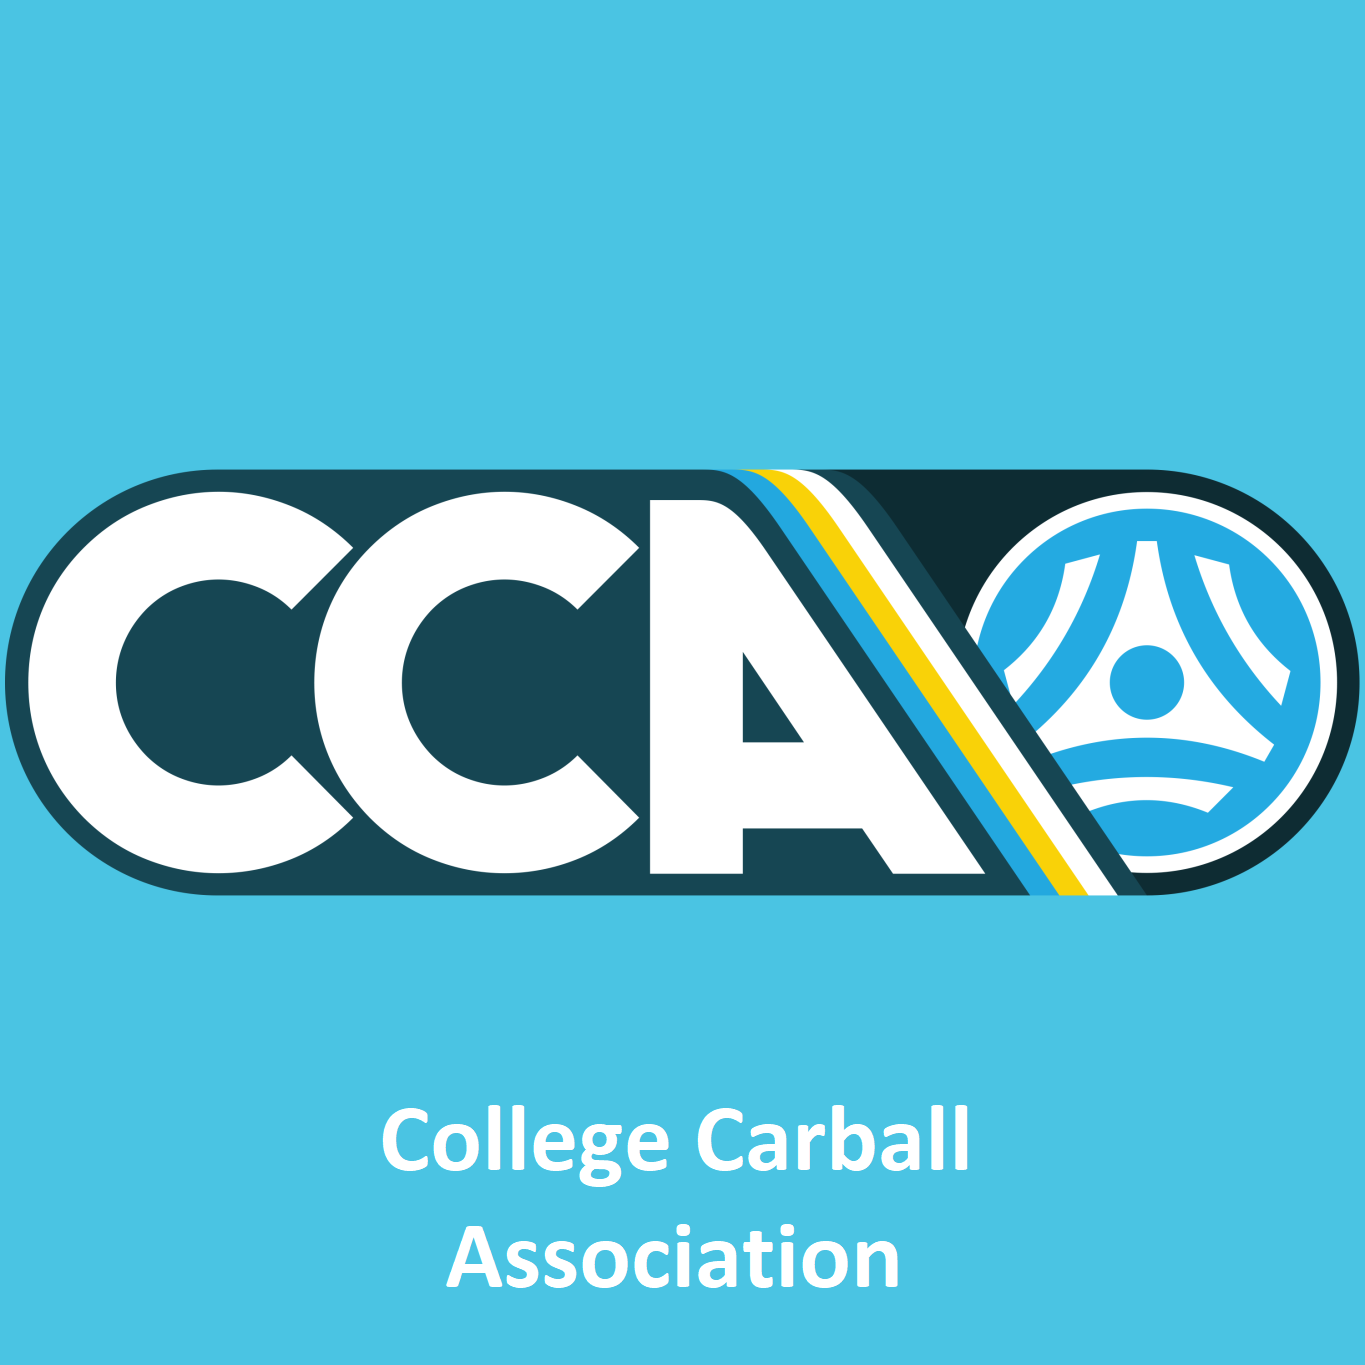 College Carball Association